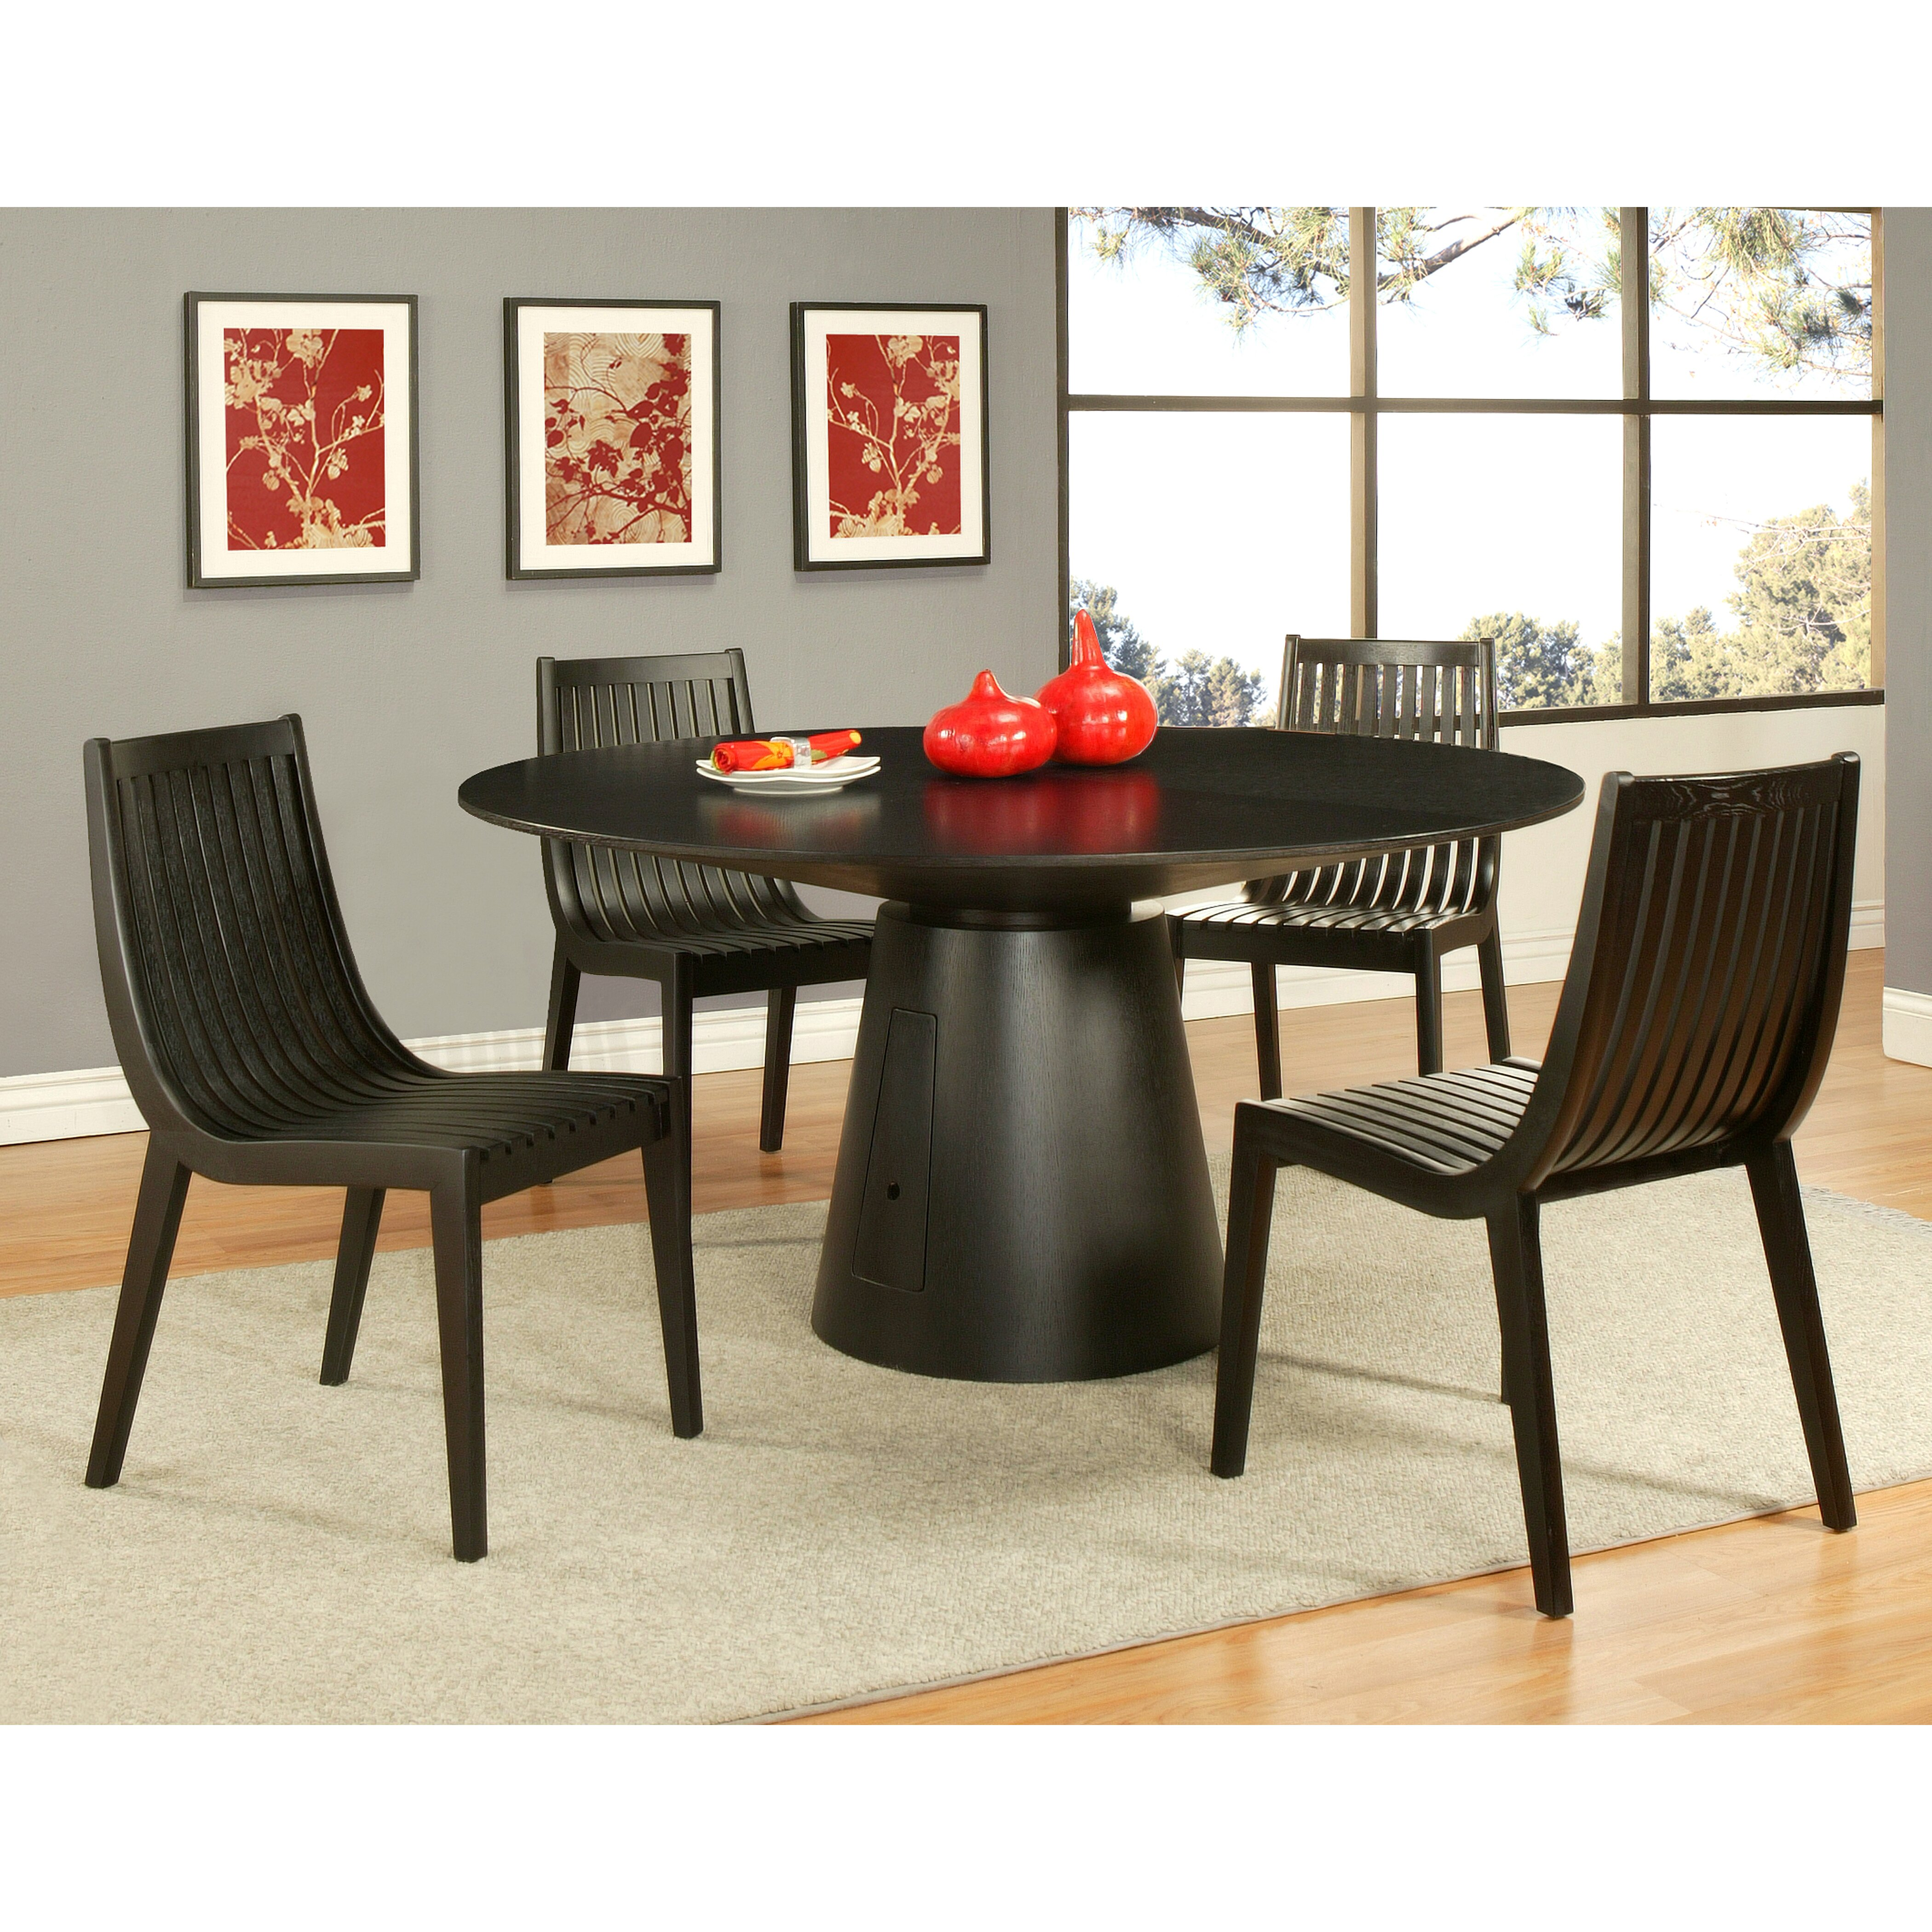 Impacterra oslo 5 piece dining set allmodern for All wood dining room sets